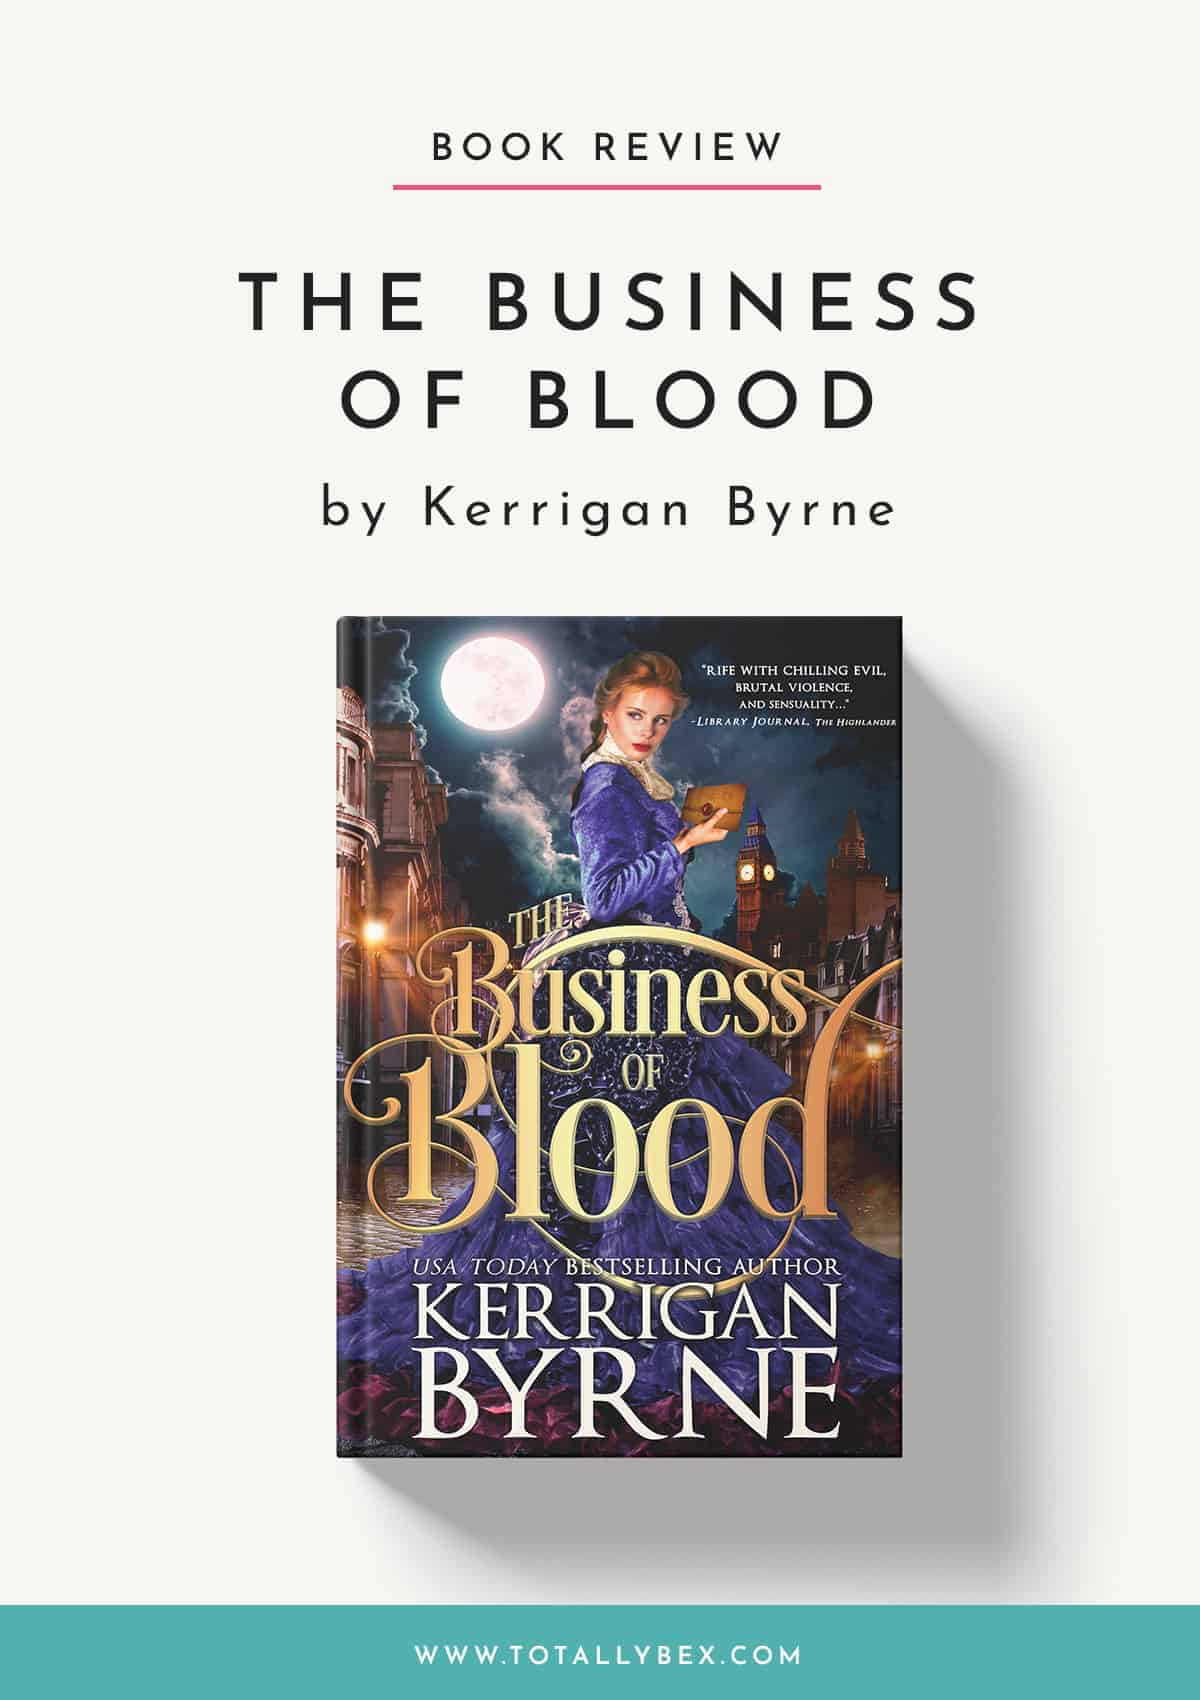 The Business of Blood by Kerrigan Byrne-Book Review